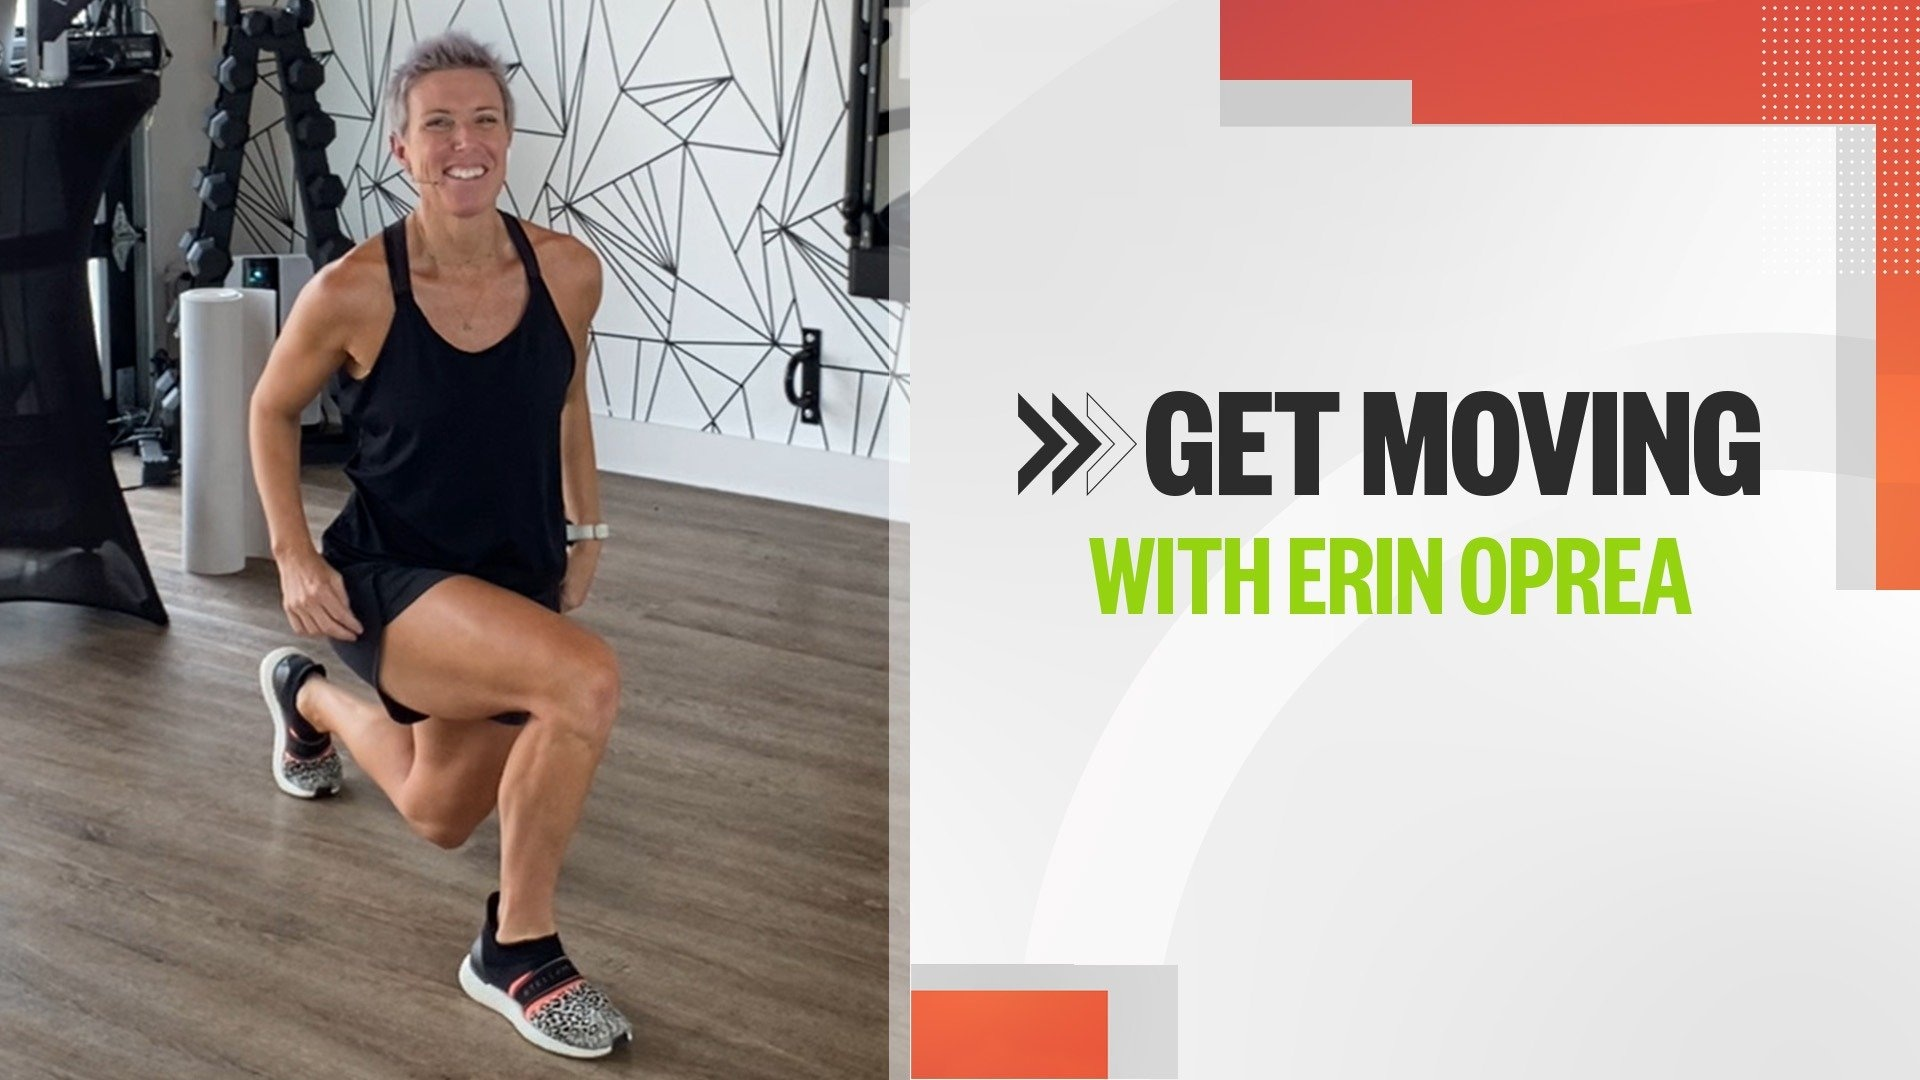 Get Moving With Erin Oprea